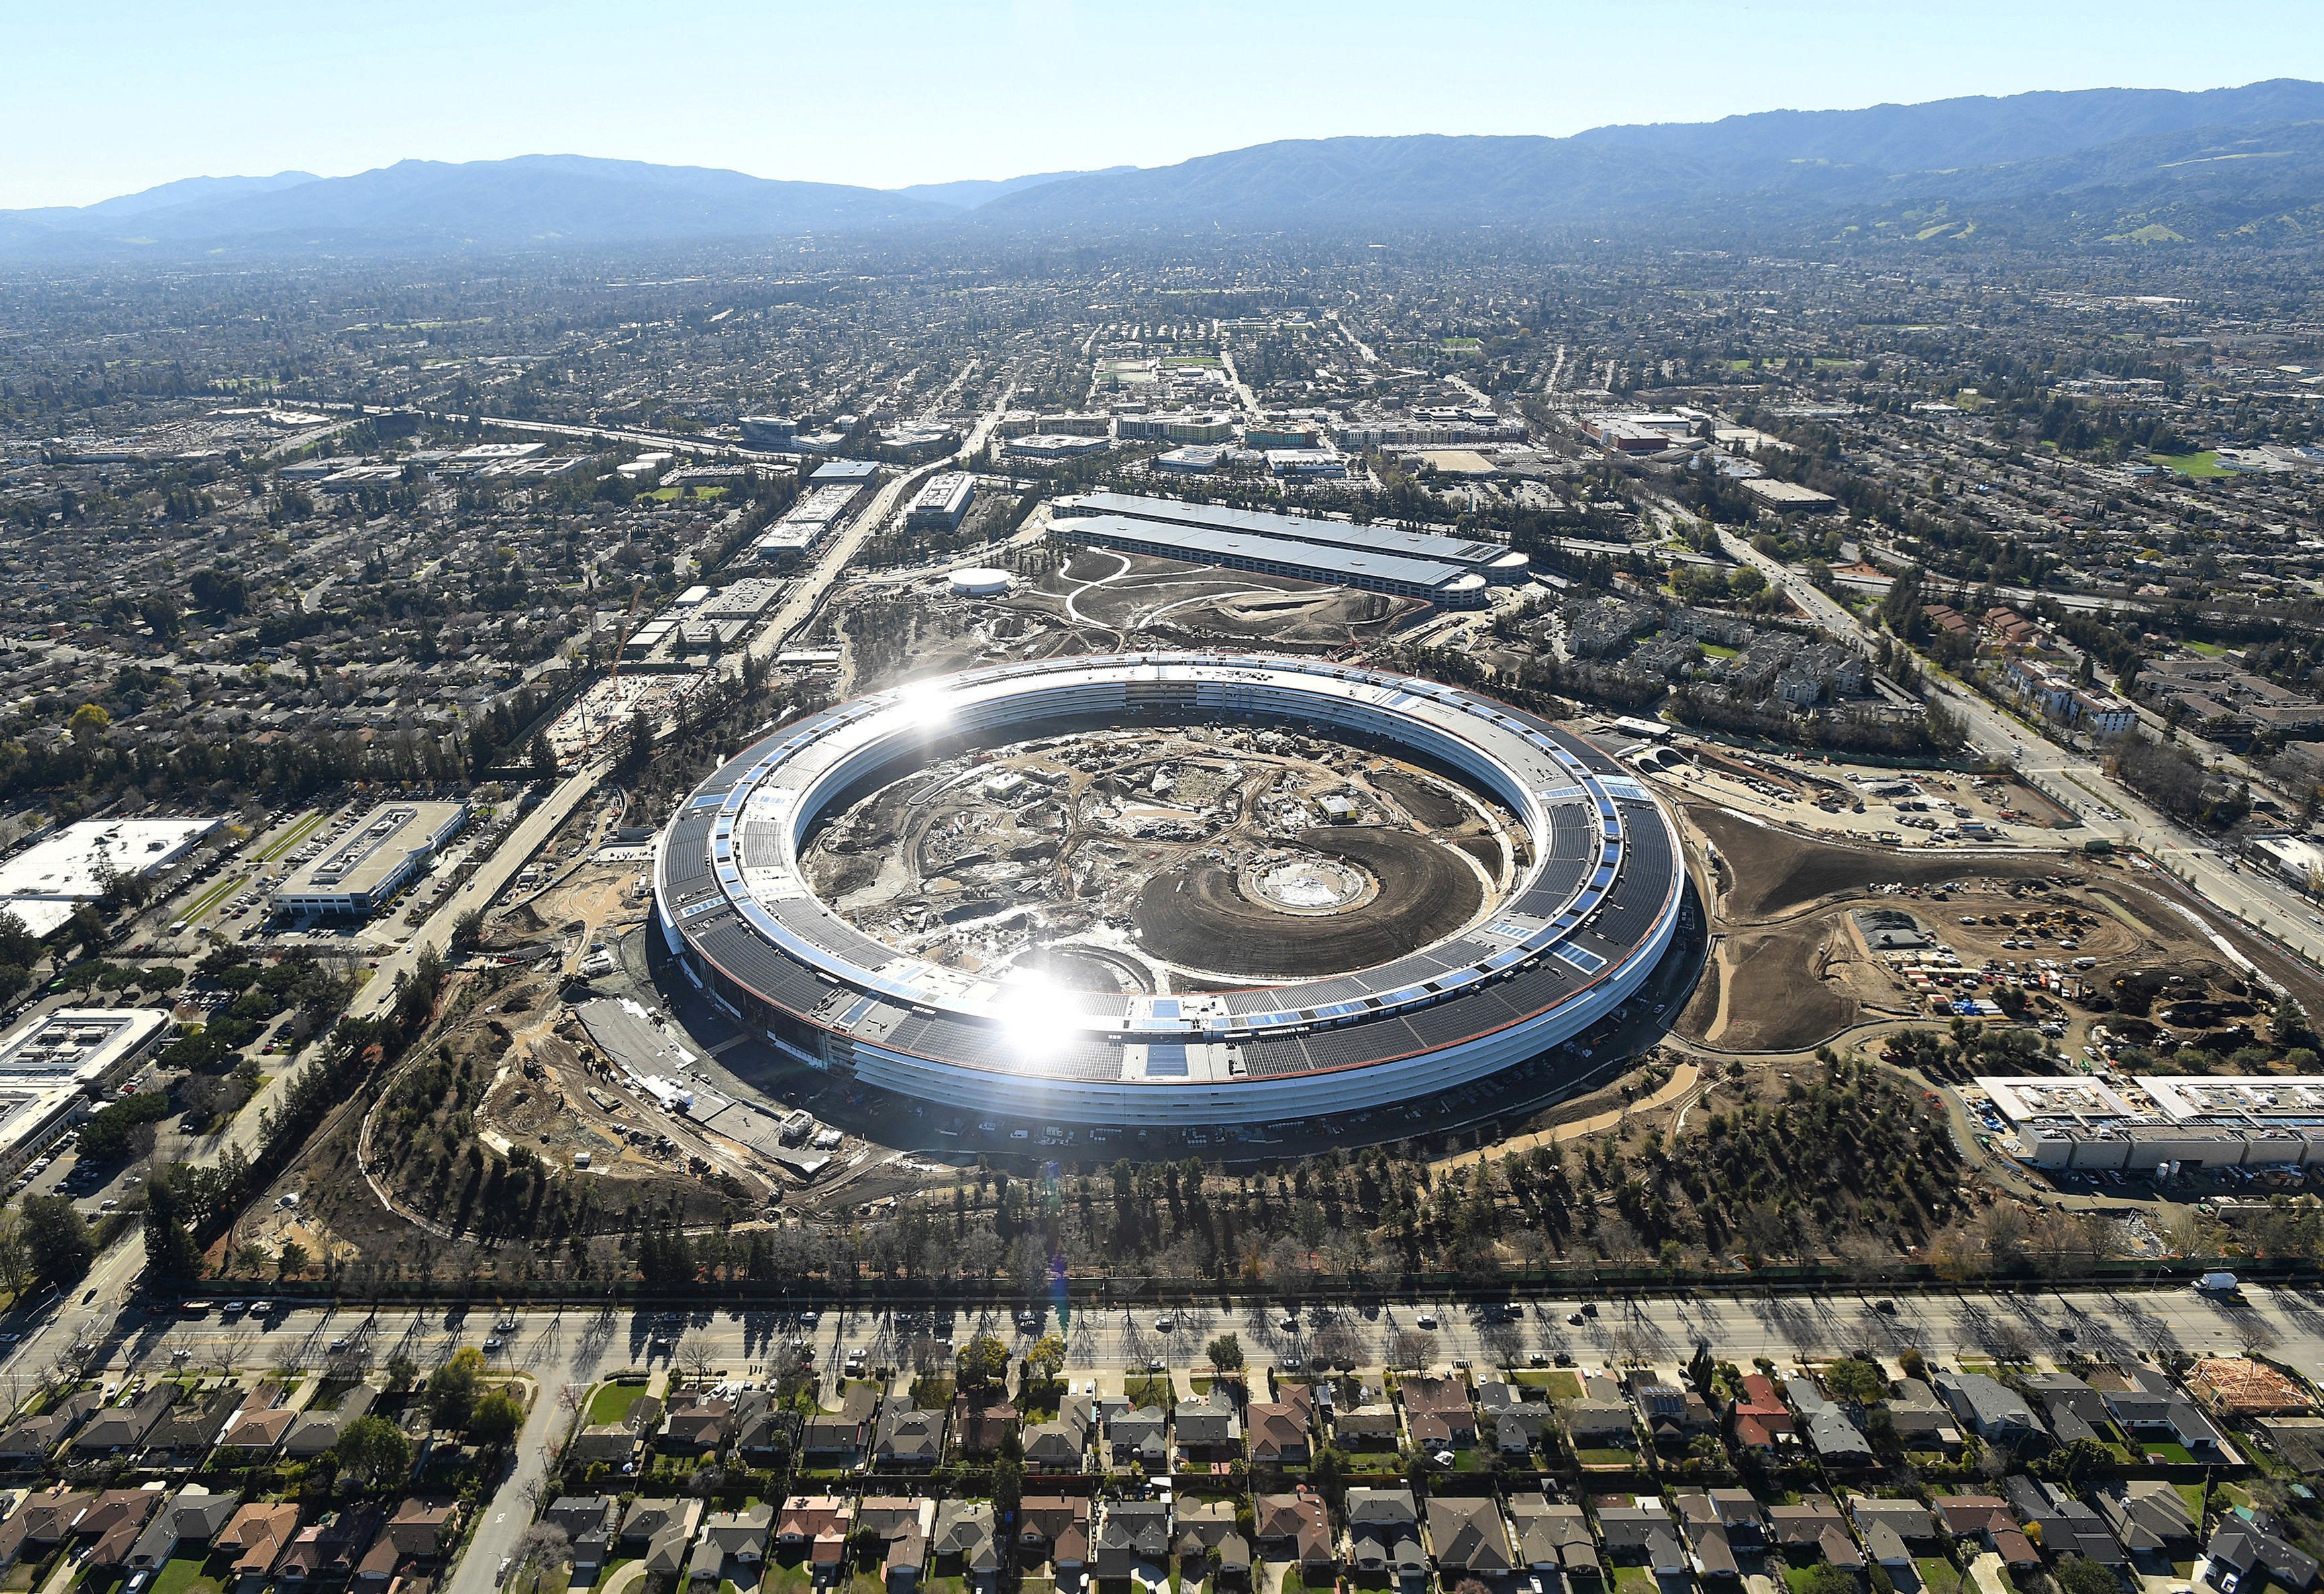 The Apple Campus 2 en construction à Cupertino, une ville de la Silicon Valley en Californie